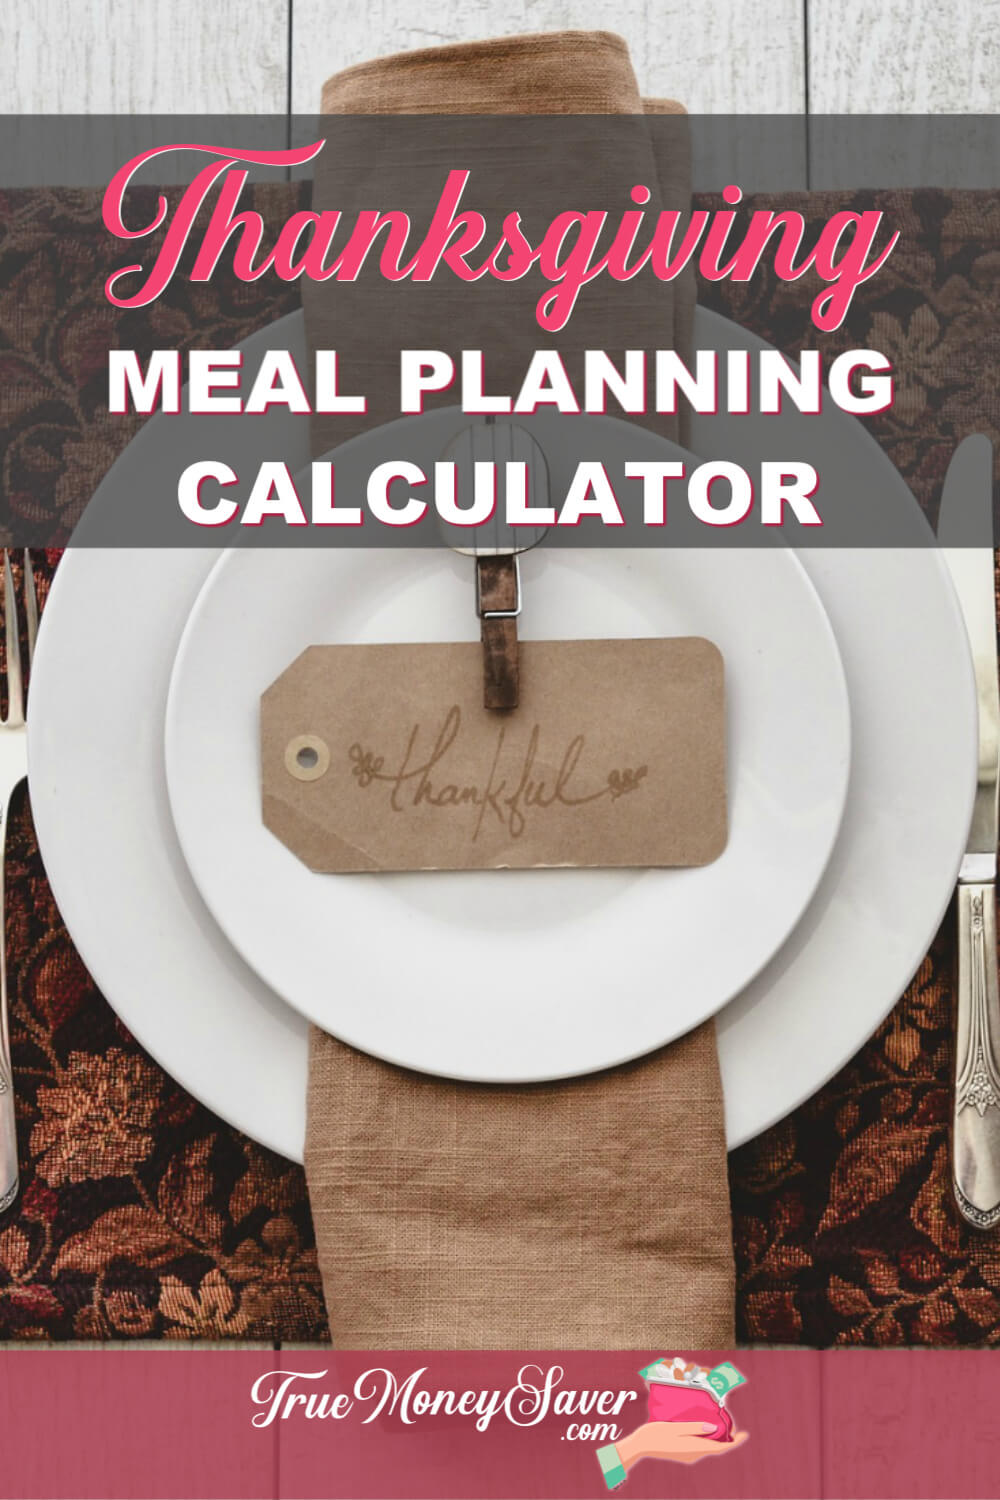 Do you need help with your Thanksgiving dinner? I\'ll show you how to plan for Thanksgiving dinner with this Thanksgiving dinner calculator! It\'s kind of like a Thanksgiving dinner cheat sheet! This Thanksgiving meal planner you\'ll love to use each year! #truemoneysaver  #thanksgiving  #thanksgivingdinner #thanksgivingmeal #mealcalculator #cheatsheet #thanksgivingfeast #howmuchfooddoineed #partytime #dinnercalculator